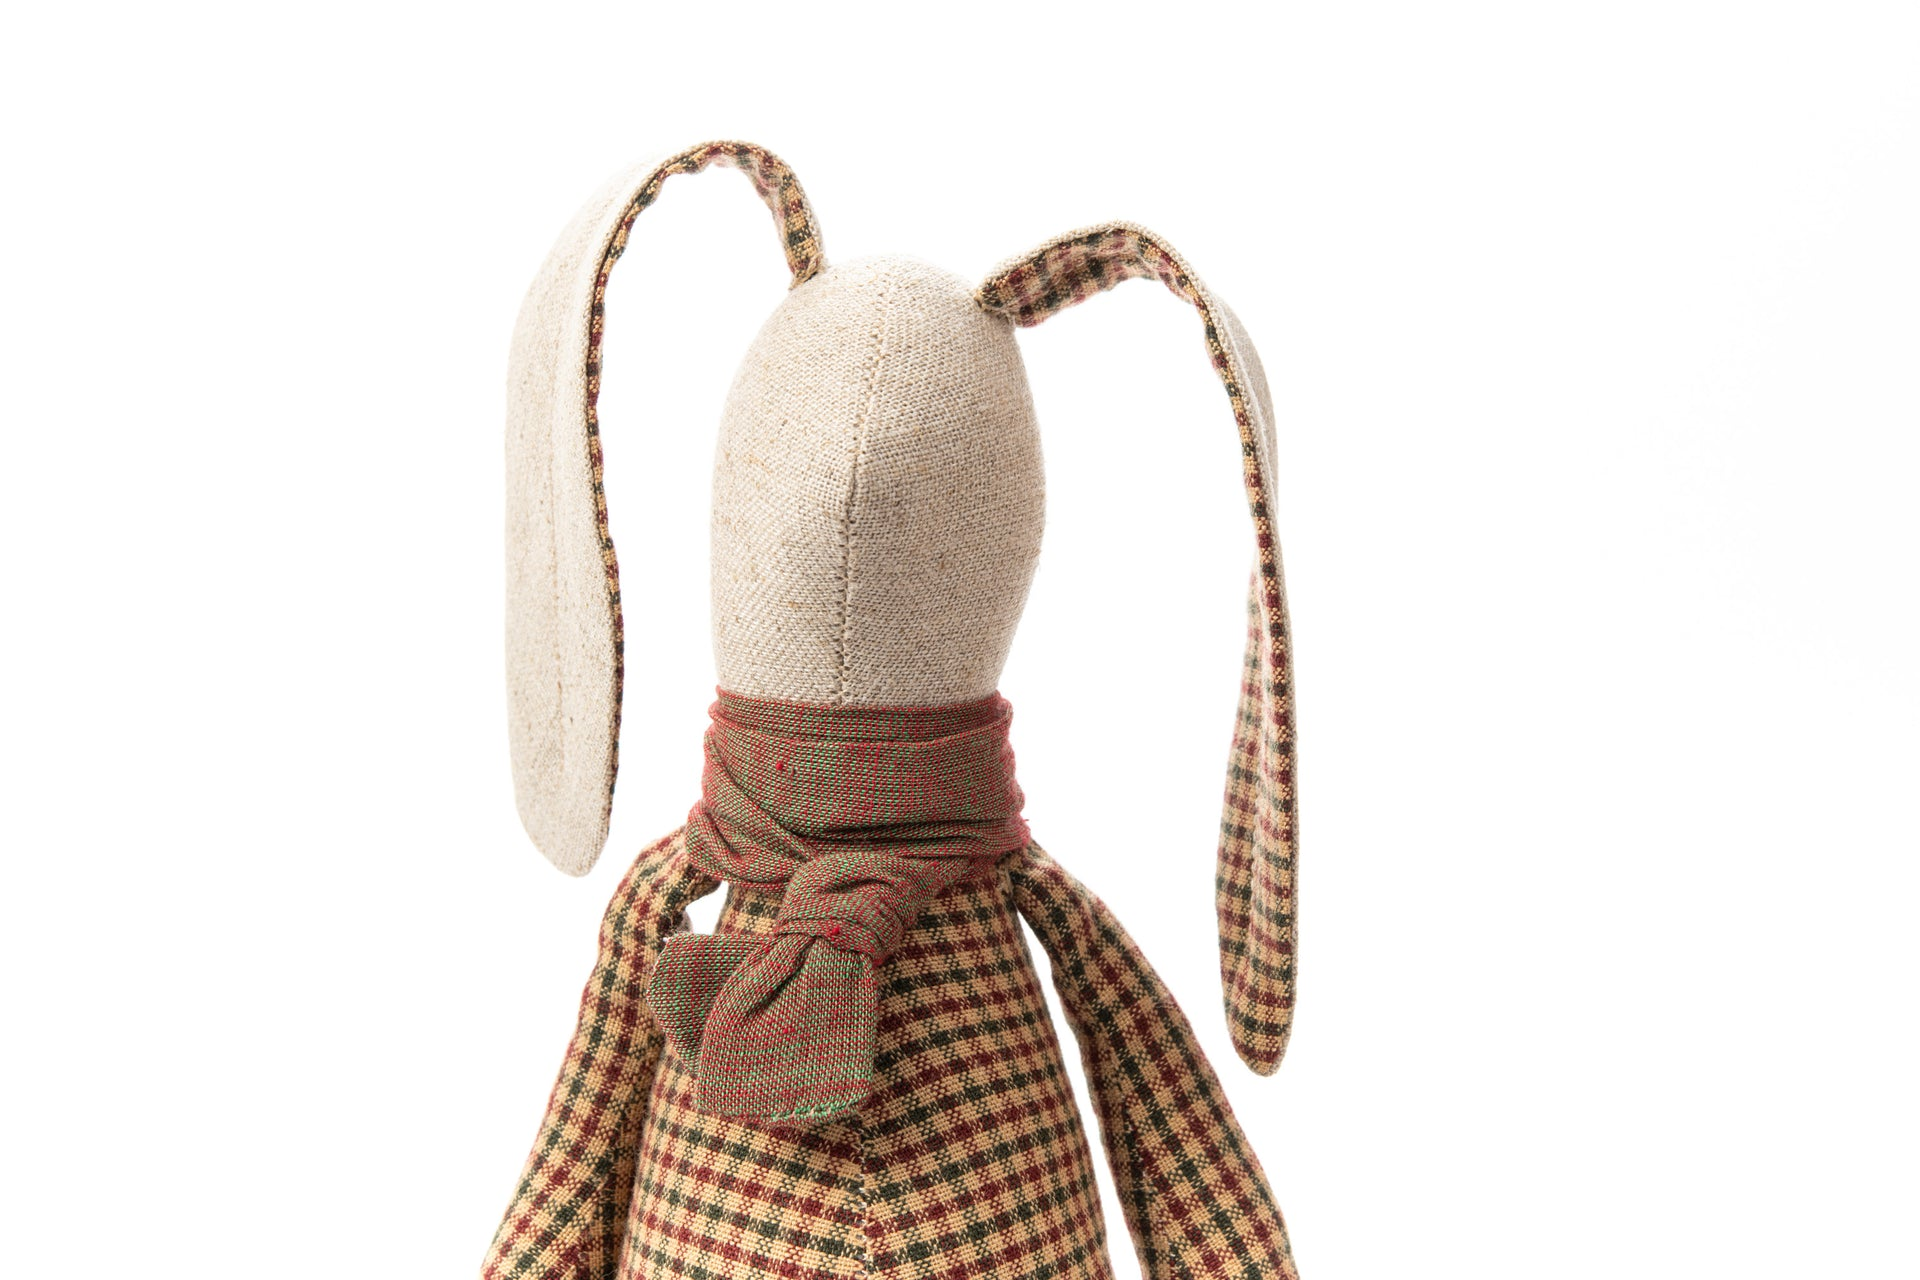 First baby toy Linen rabbit Handmade bunny Decorative doll SMALL doll stuffed animel Fabric rag doll Baby shower gift Gender neutral toy